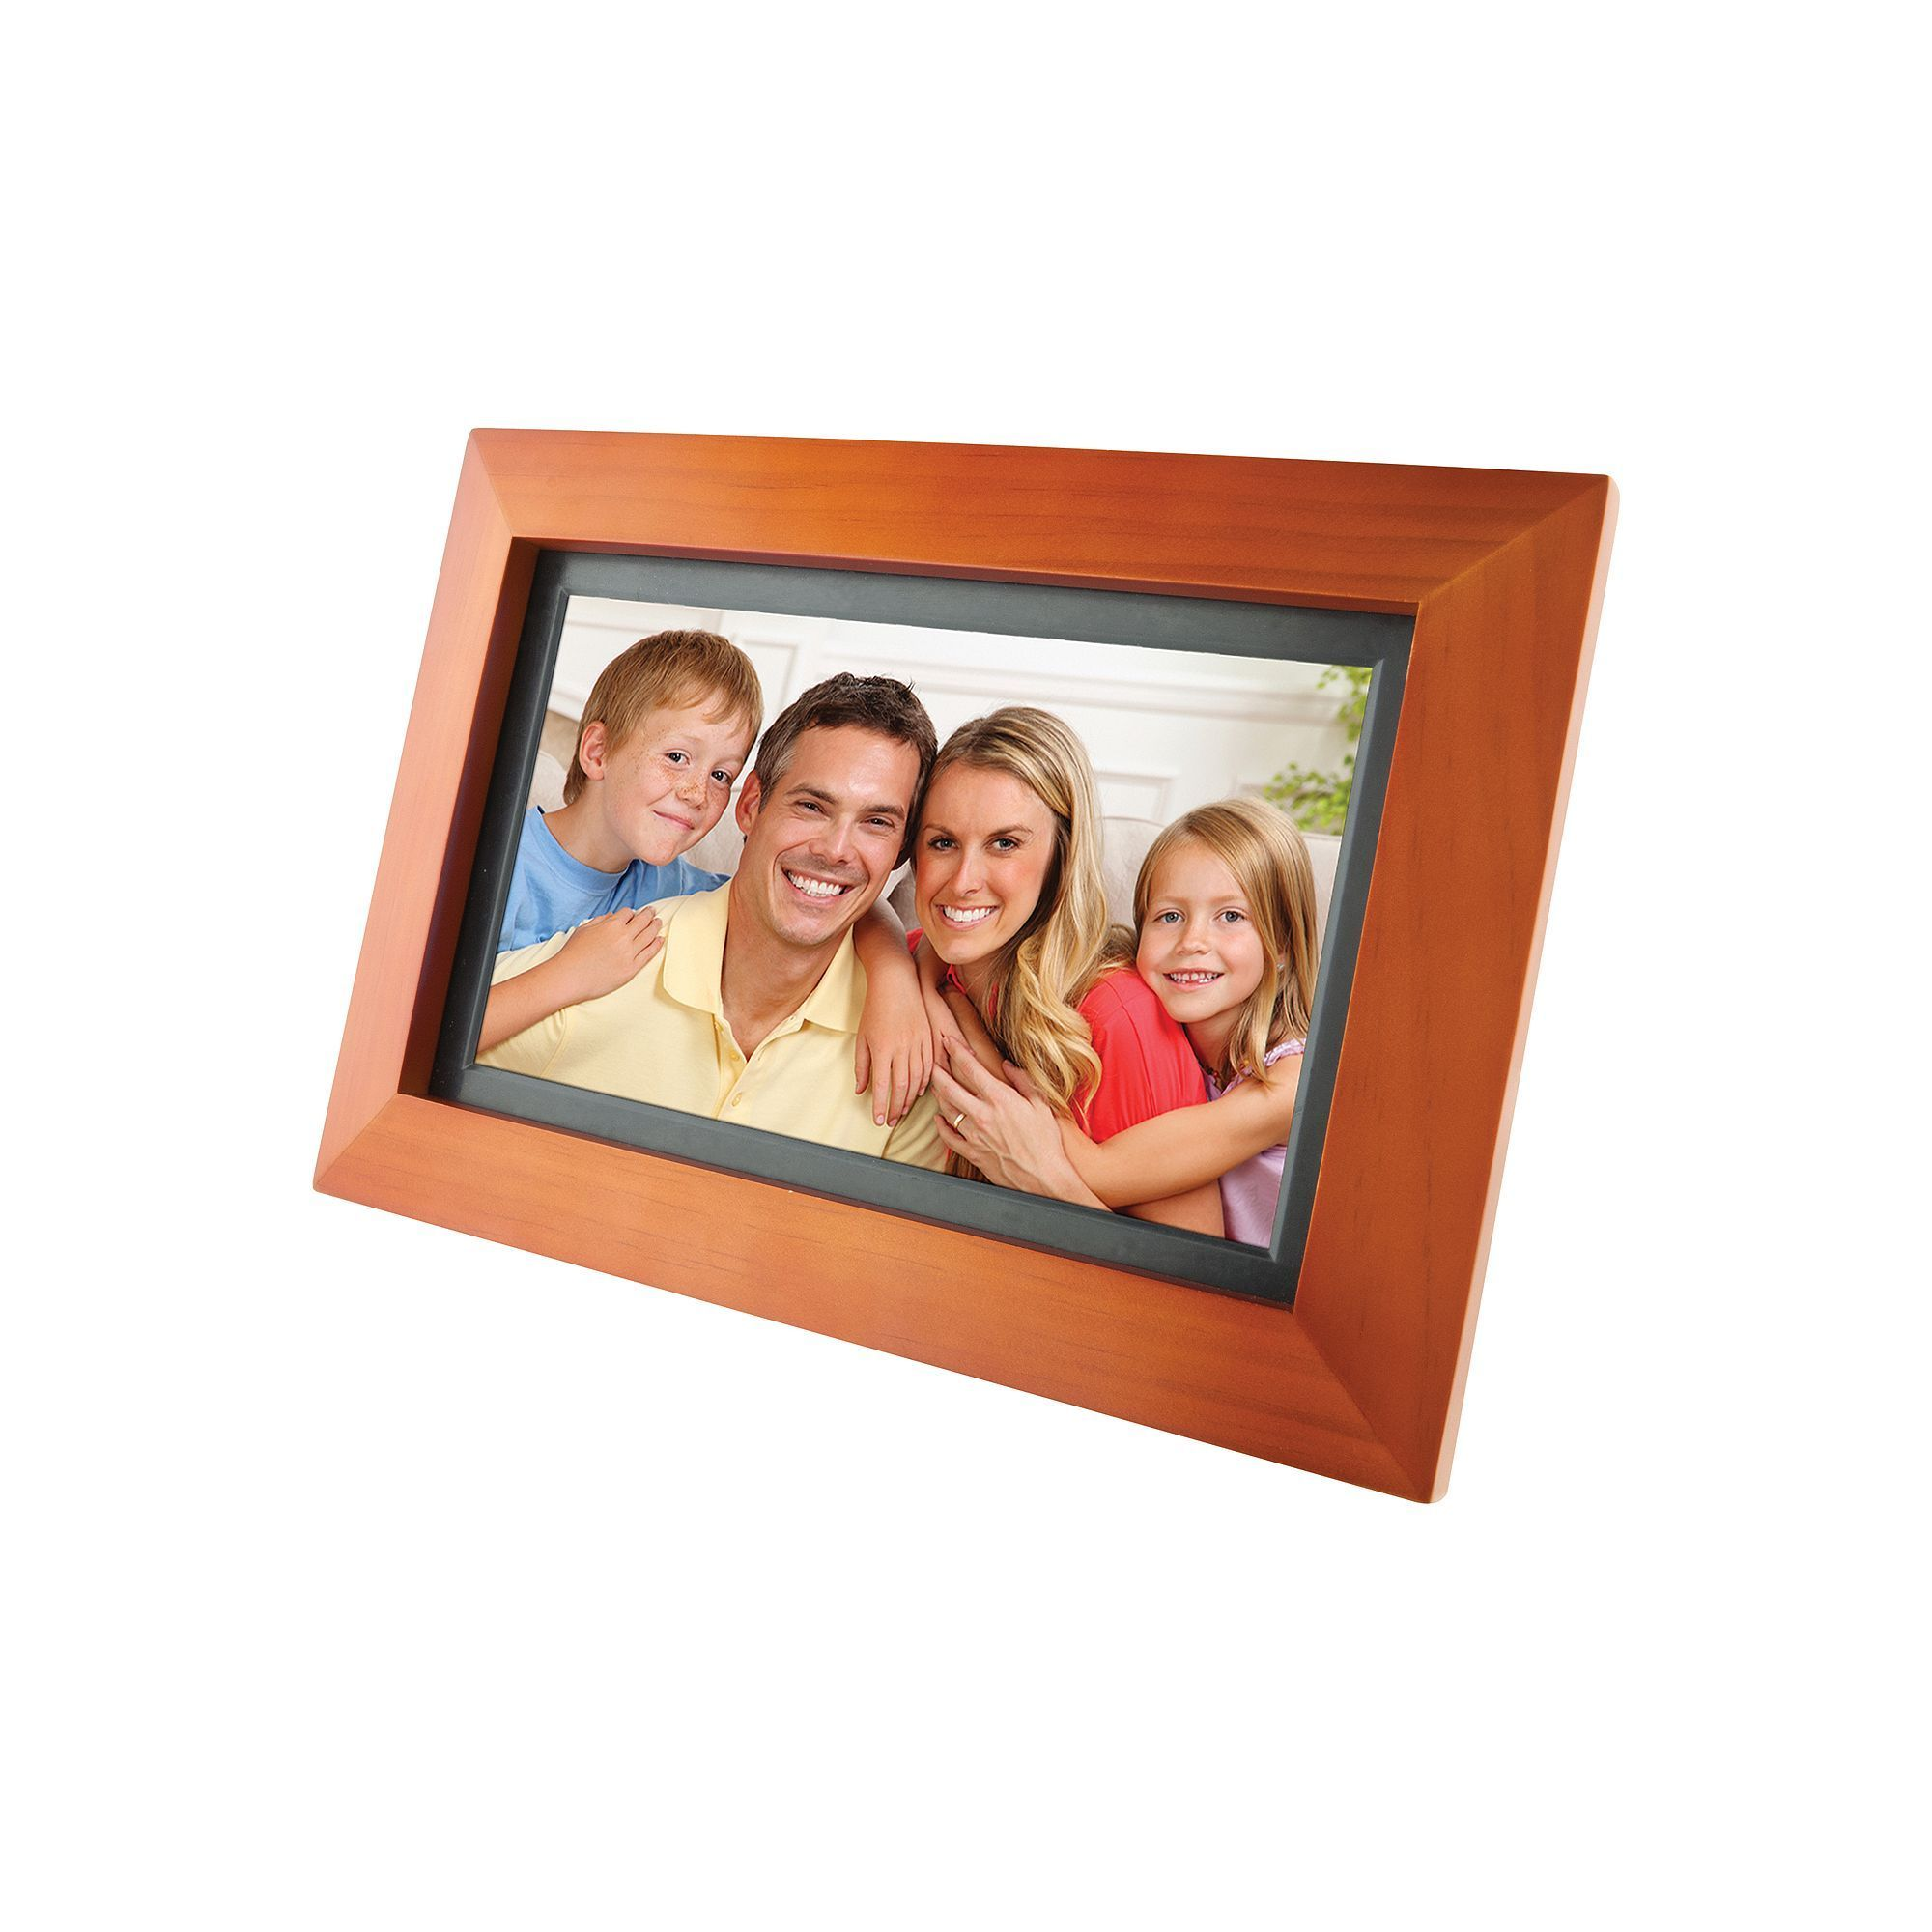 GPX 9-in. Digital Photo Frame, Multicolor   Digital photo frame and ...